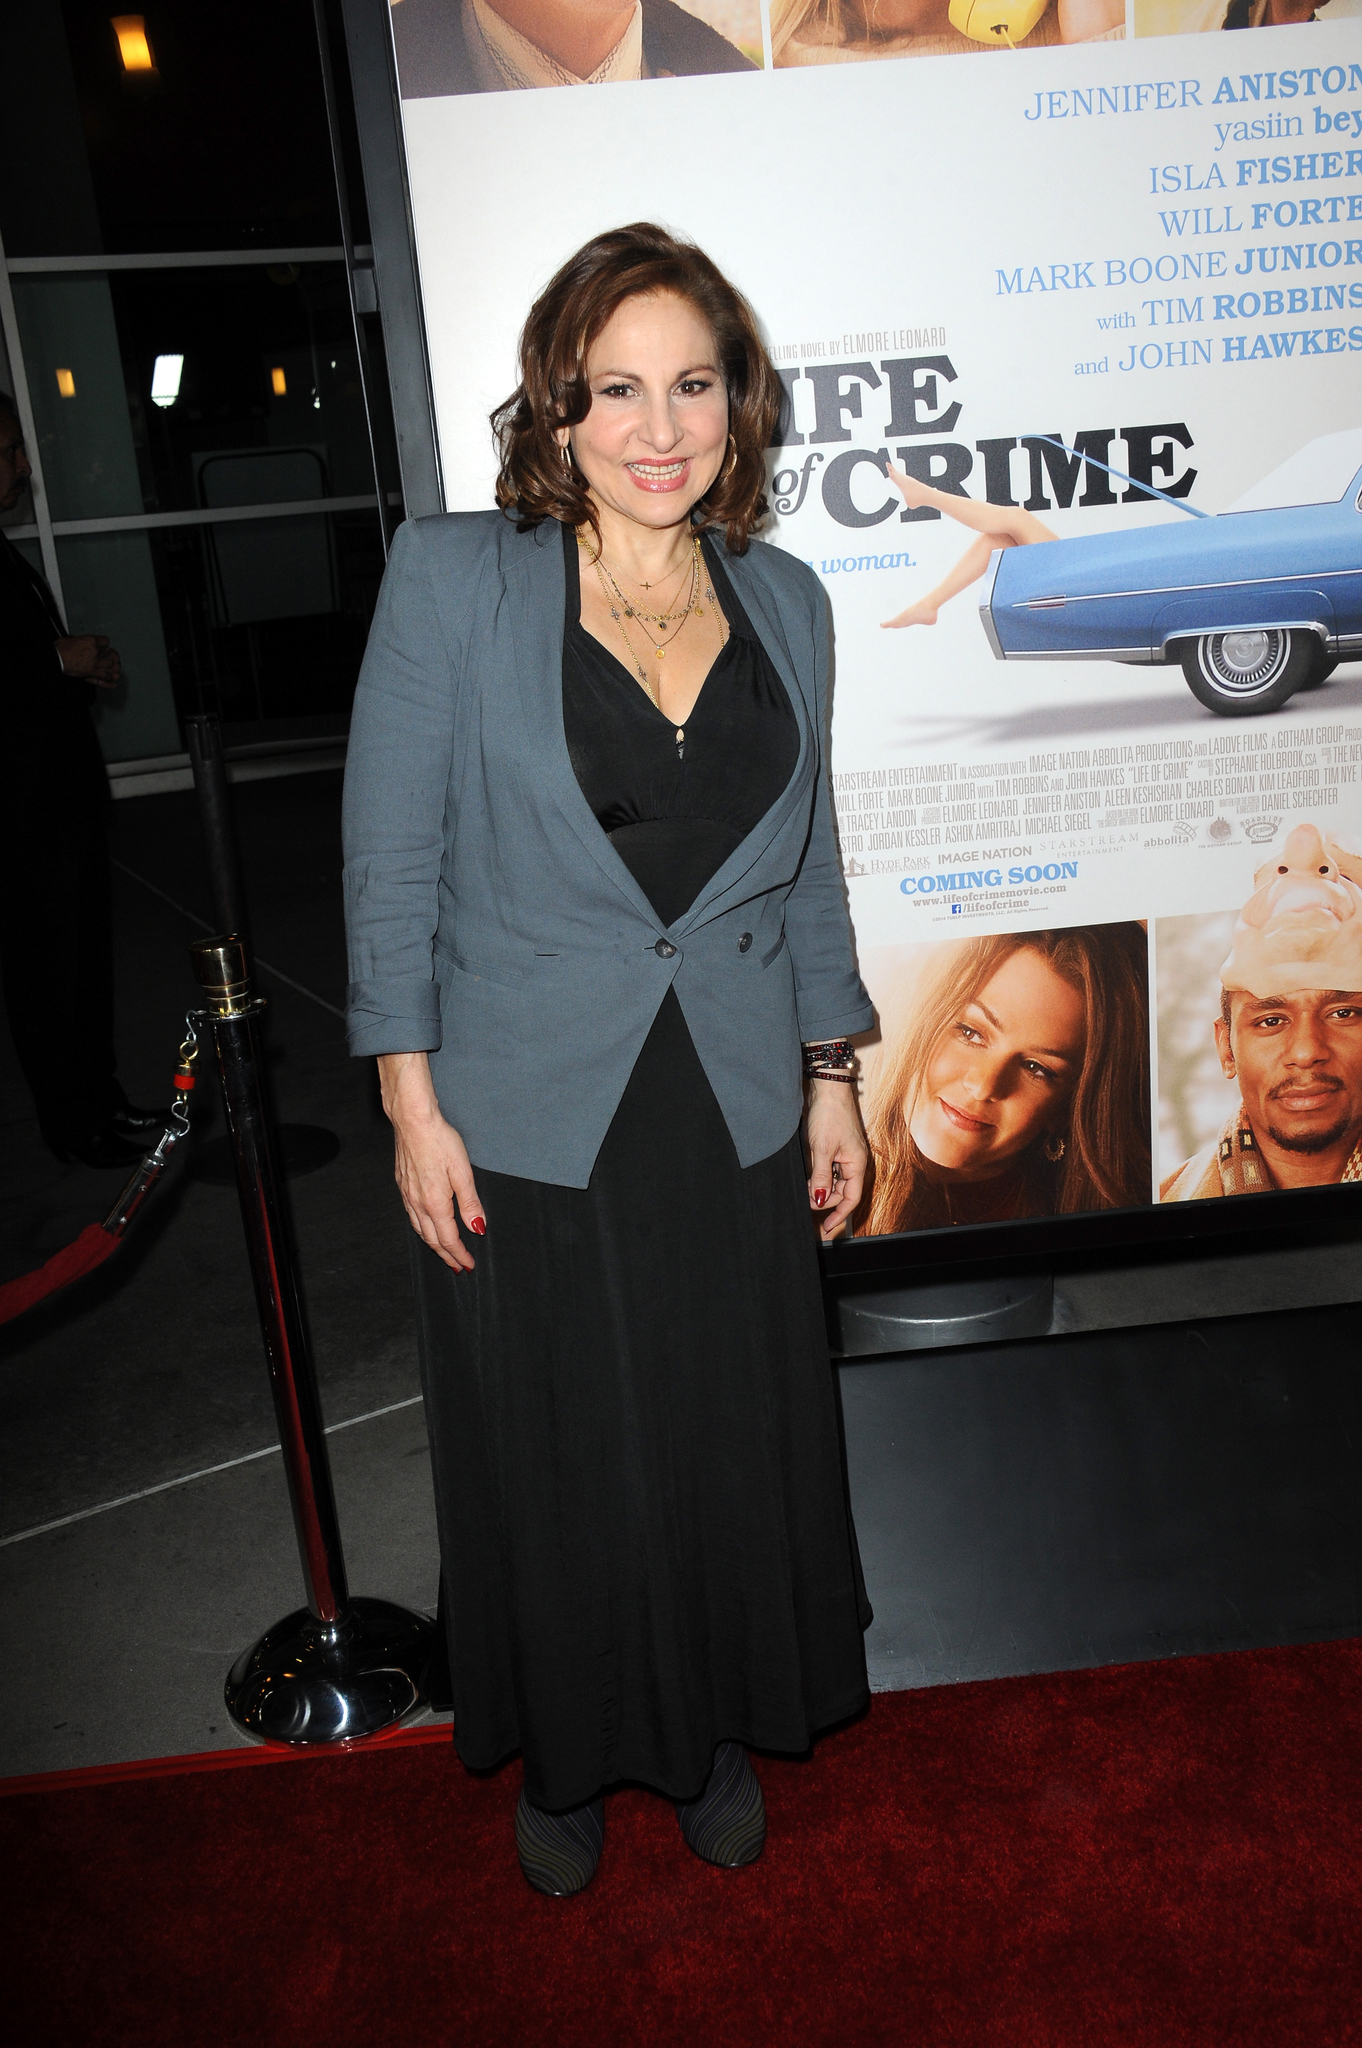 Kathy Najimy at event of Life of Crime (2013)